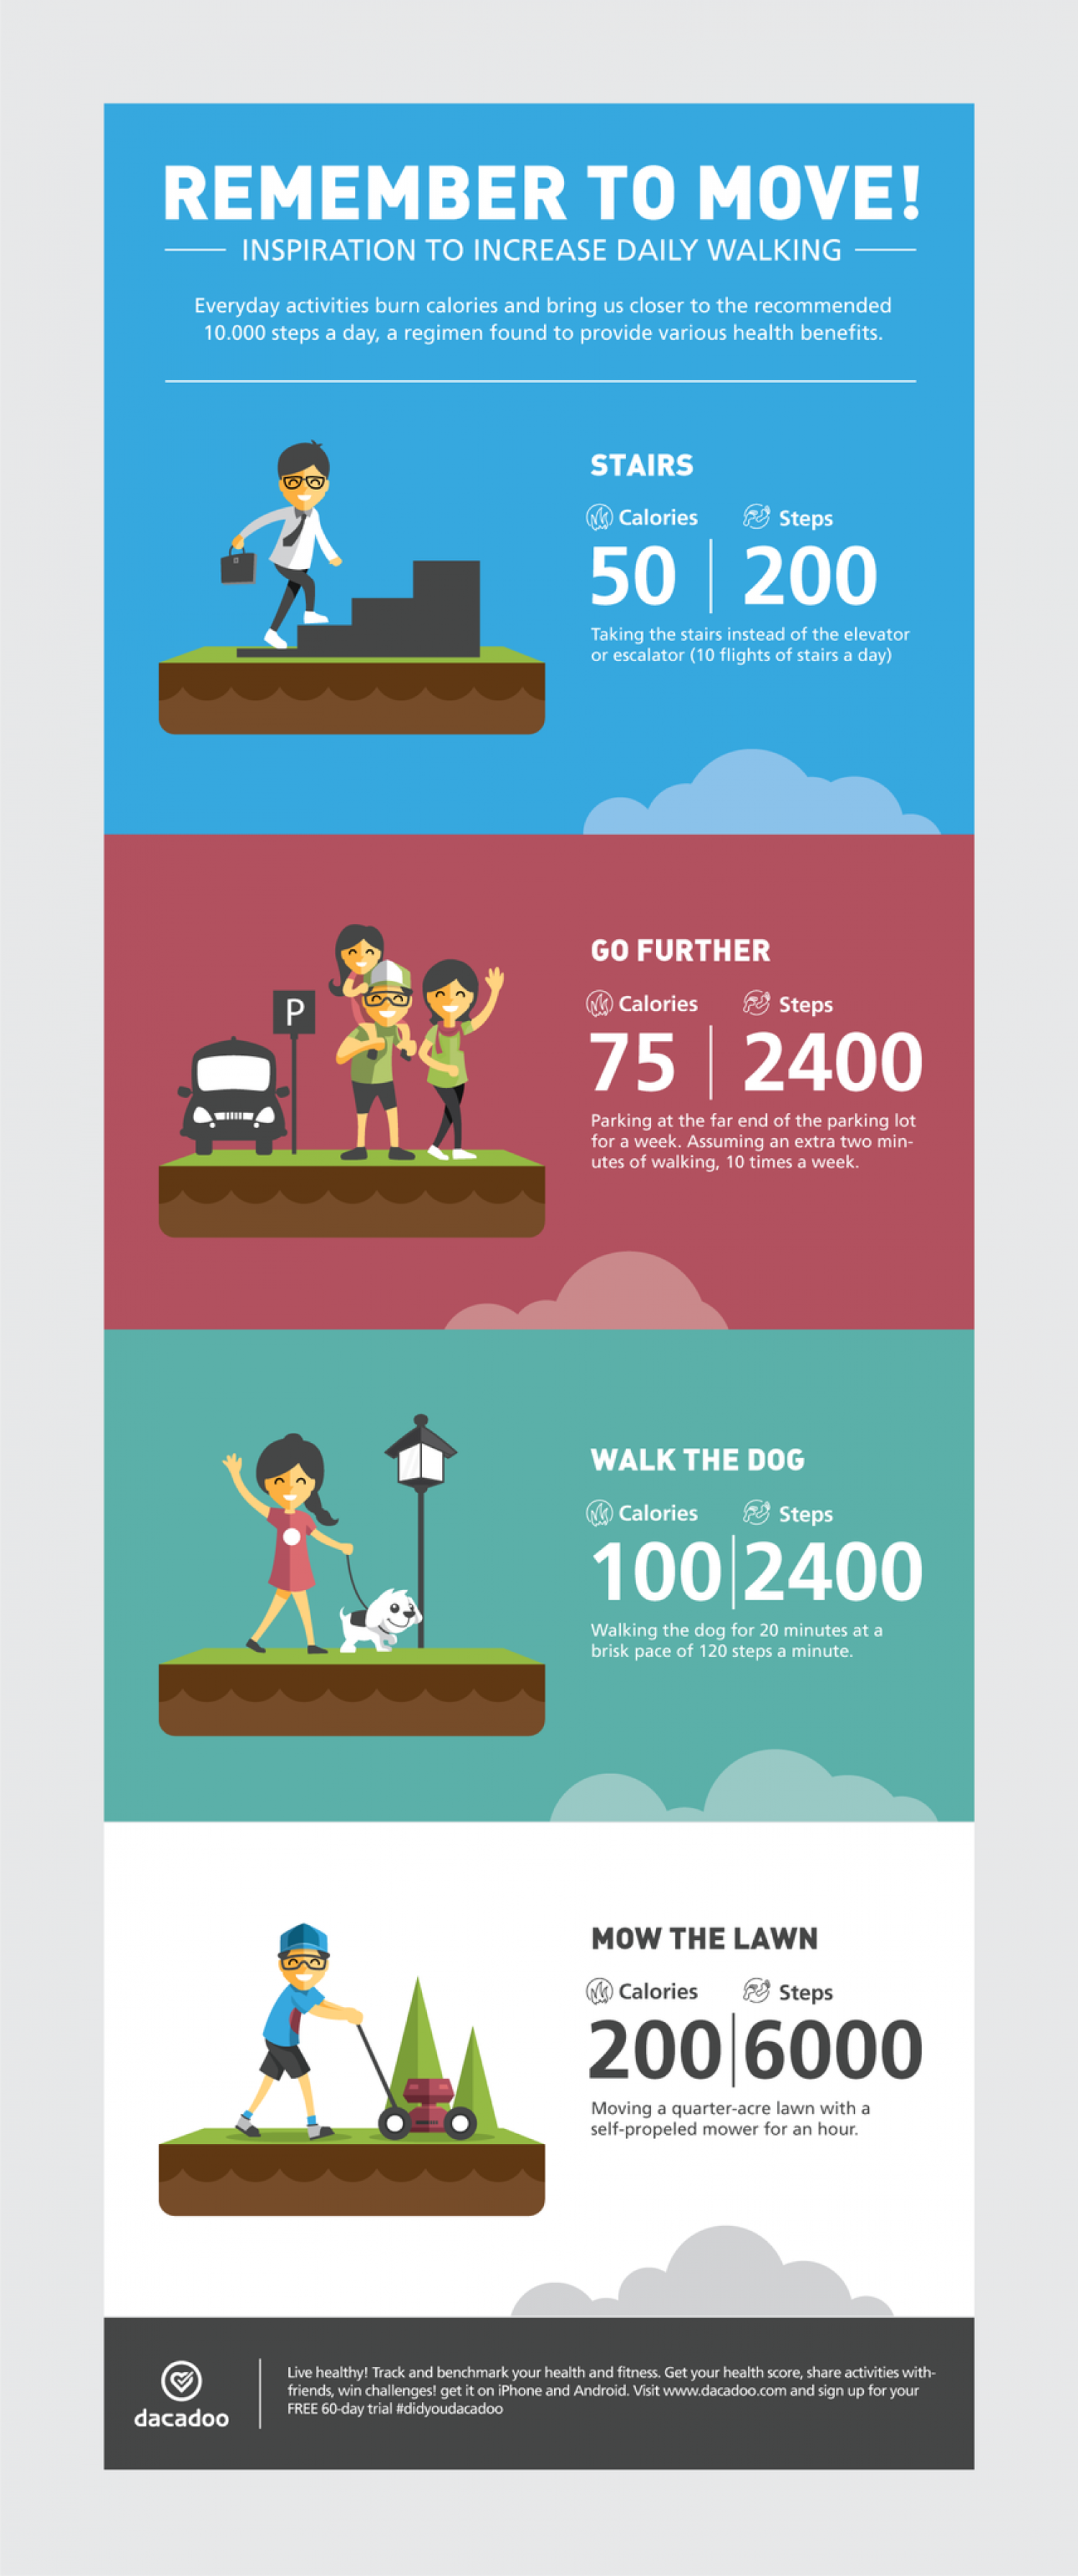 How to reach 10,000 daily steps Infographic